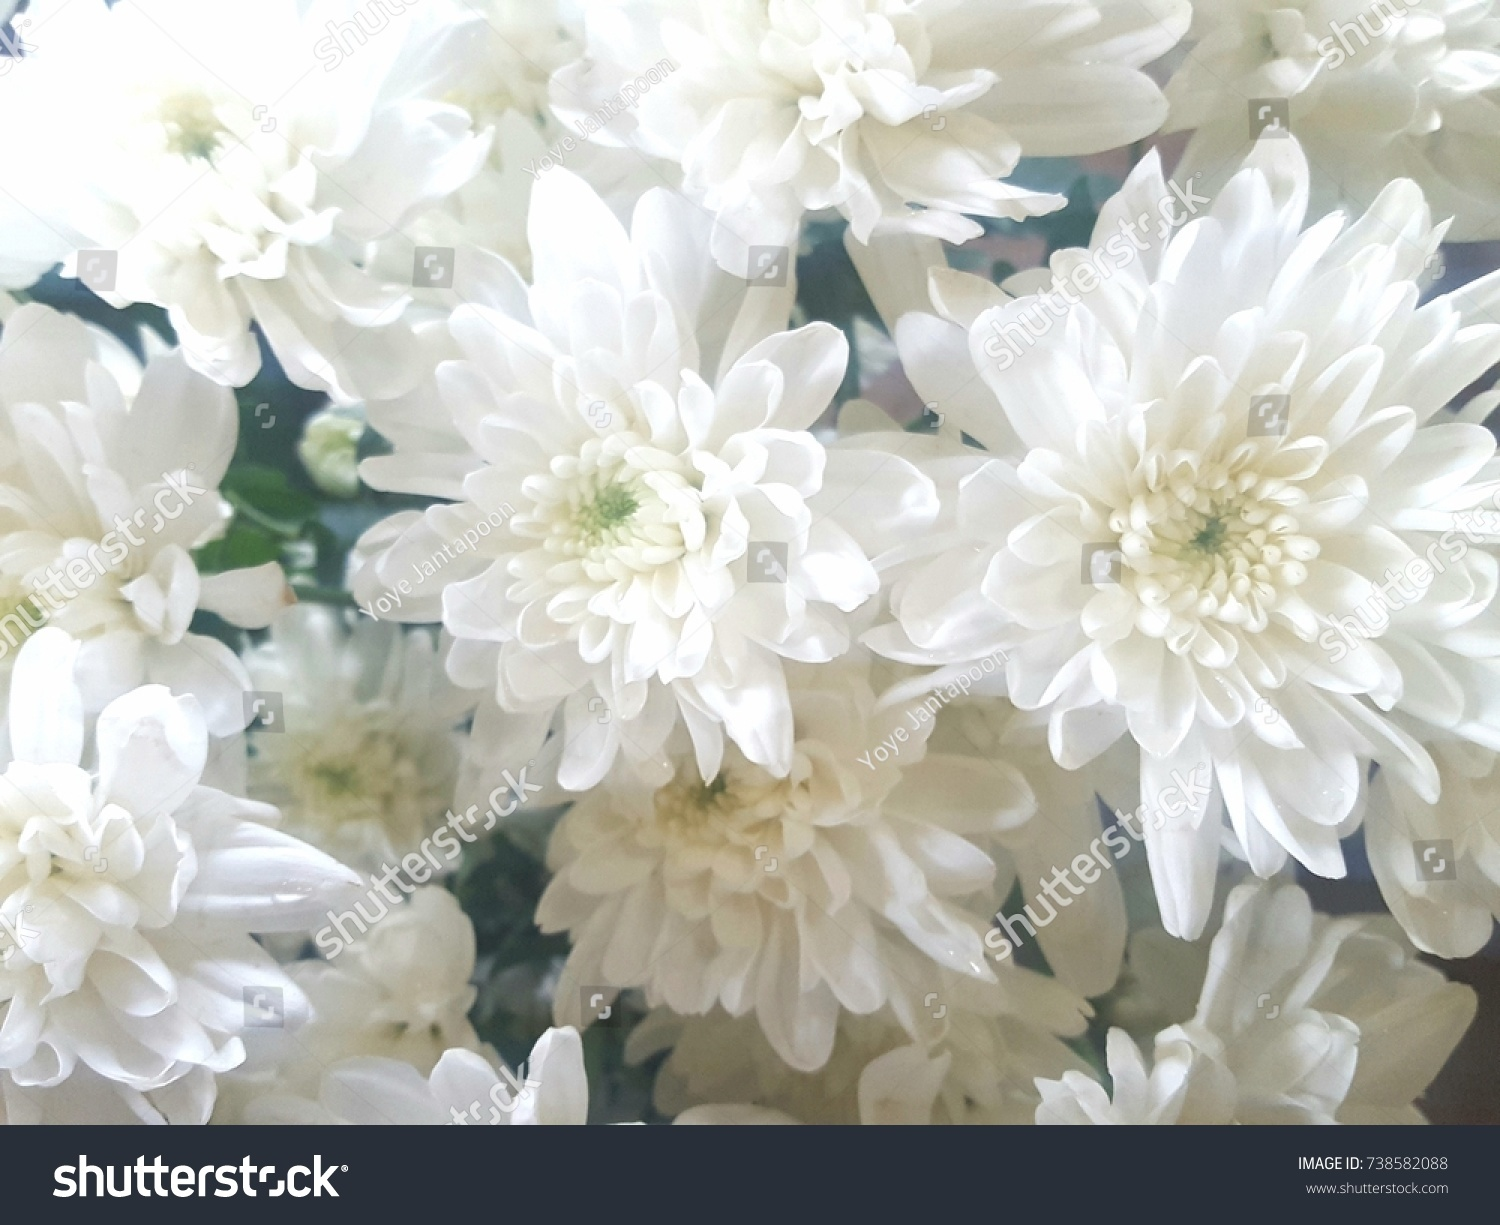 White Chrysanthemum In A Flower Shop A Bouquet Of Chrysanthemums